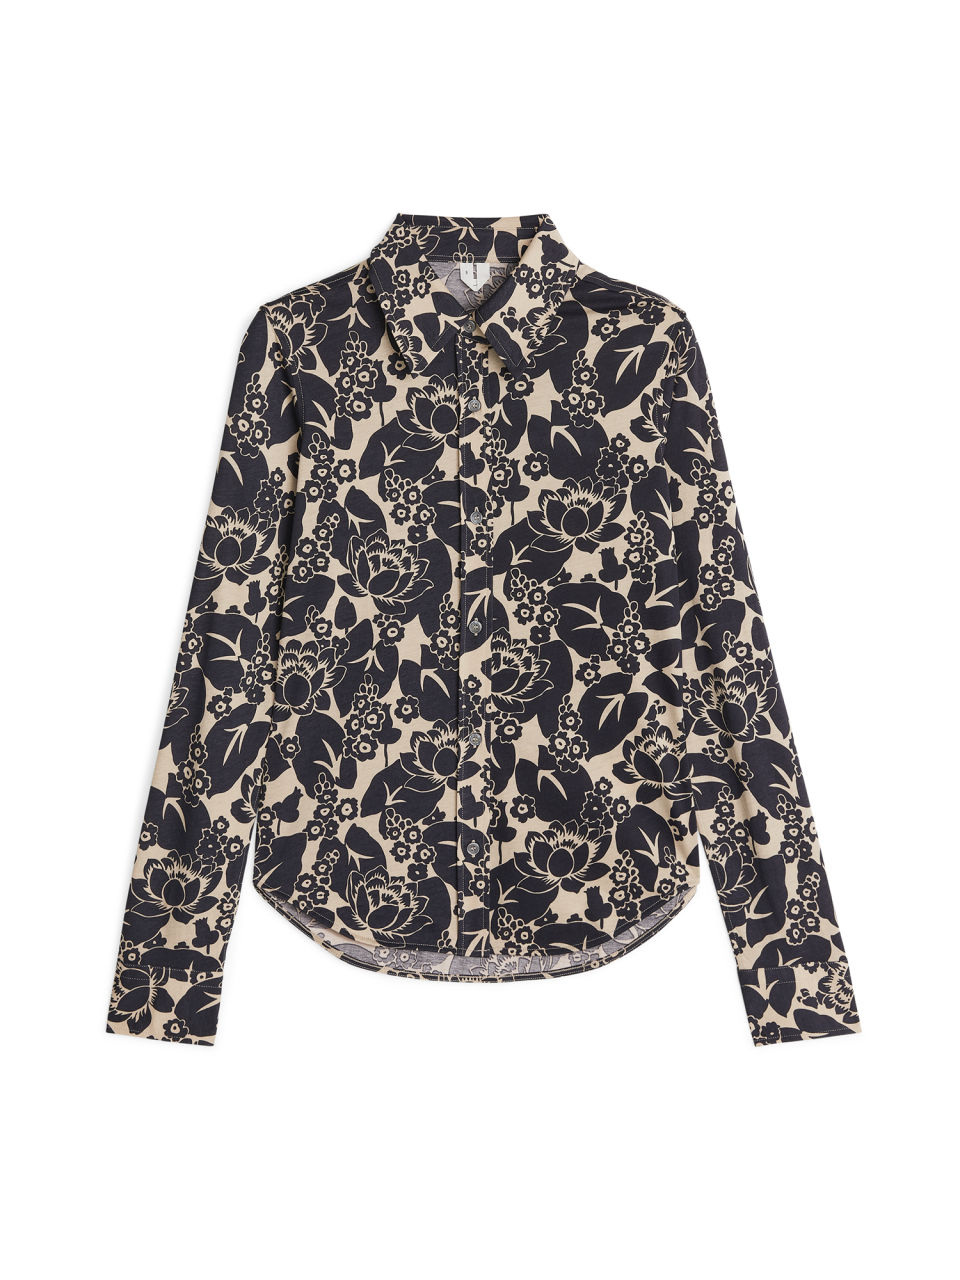 Sunday30 Floral Blue Arket Jersey By Buy At Shirt com XPkZiuO